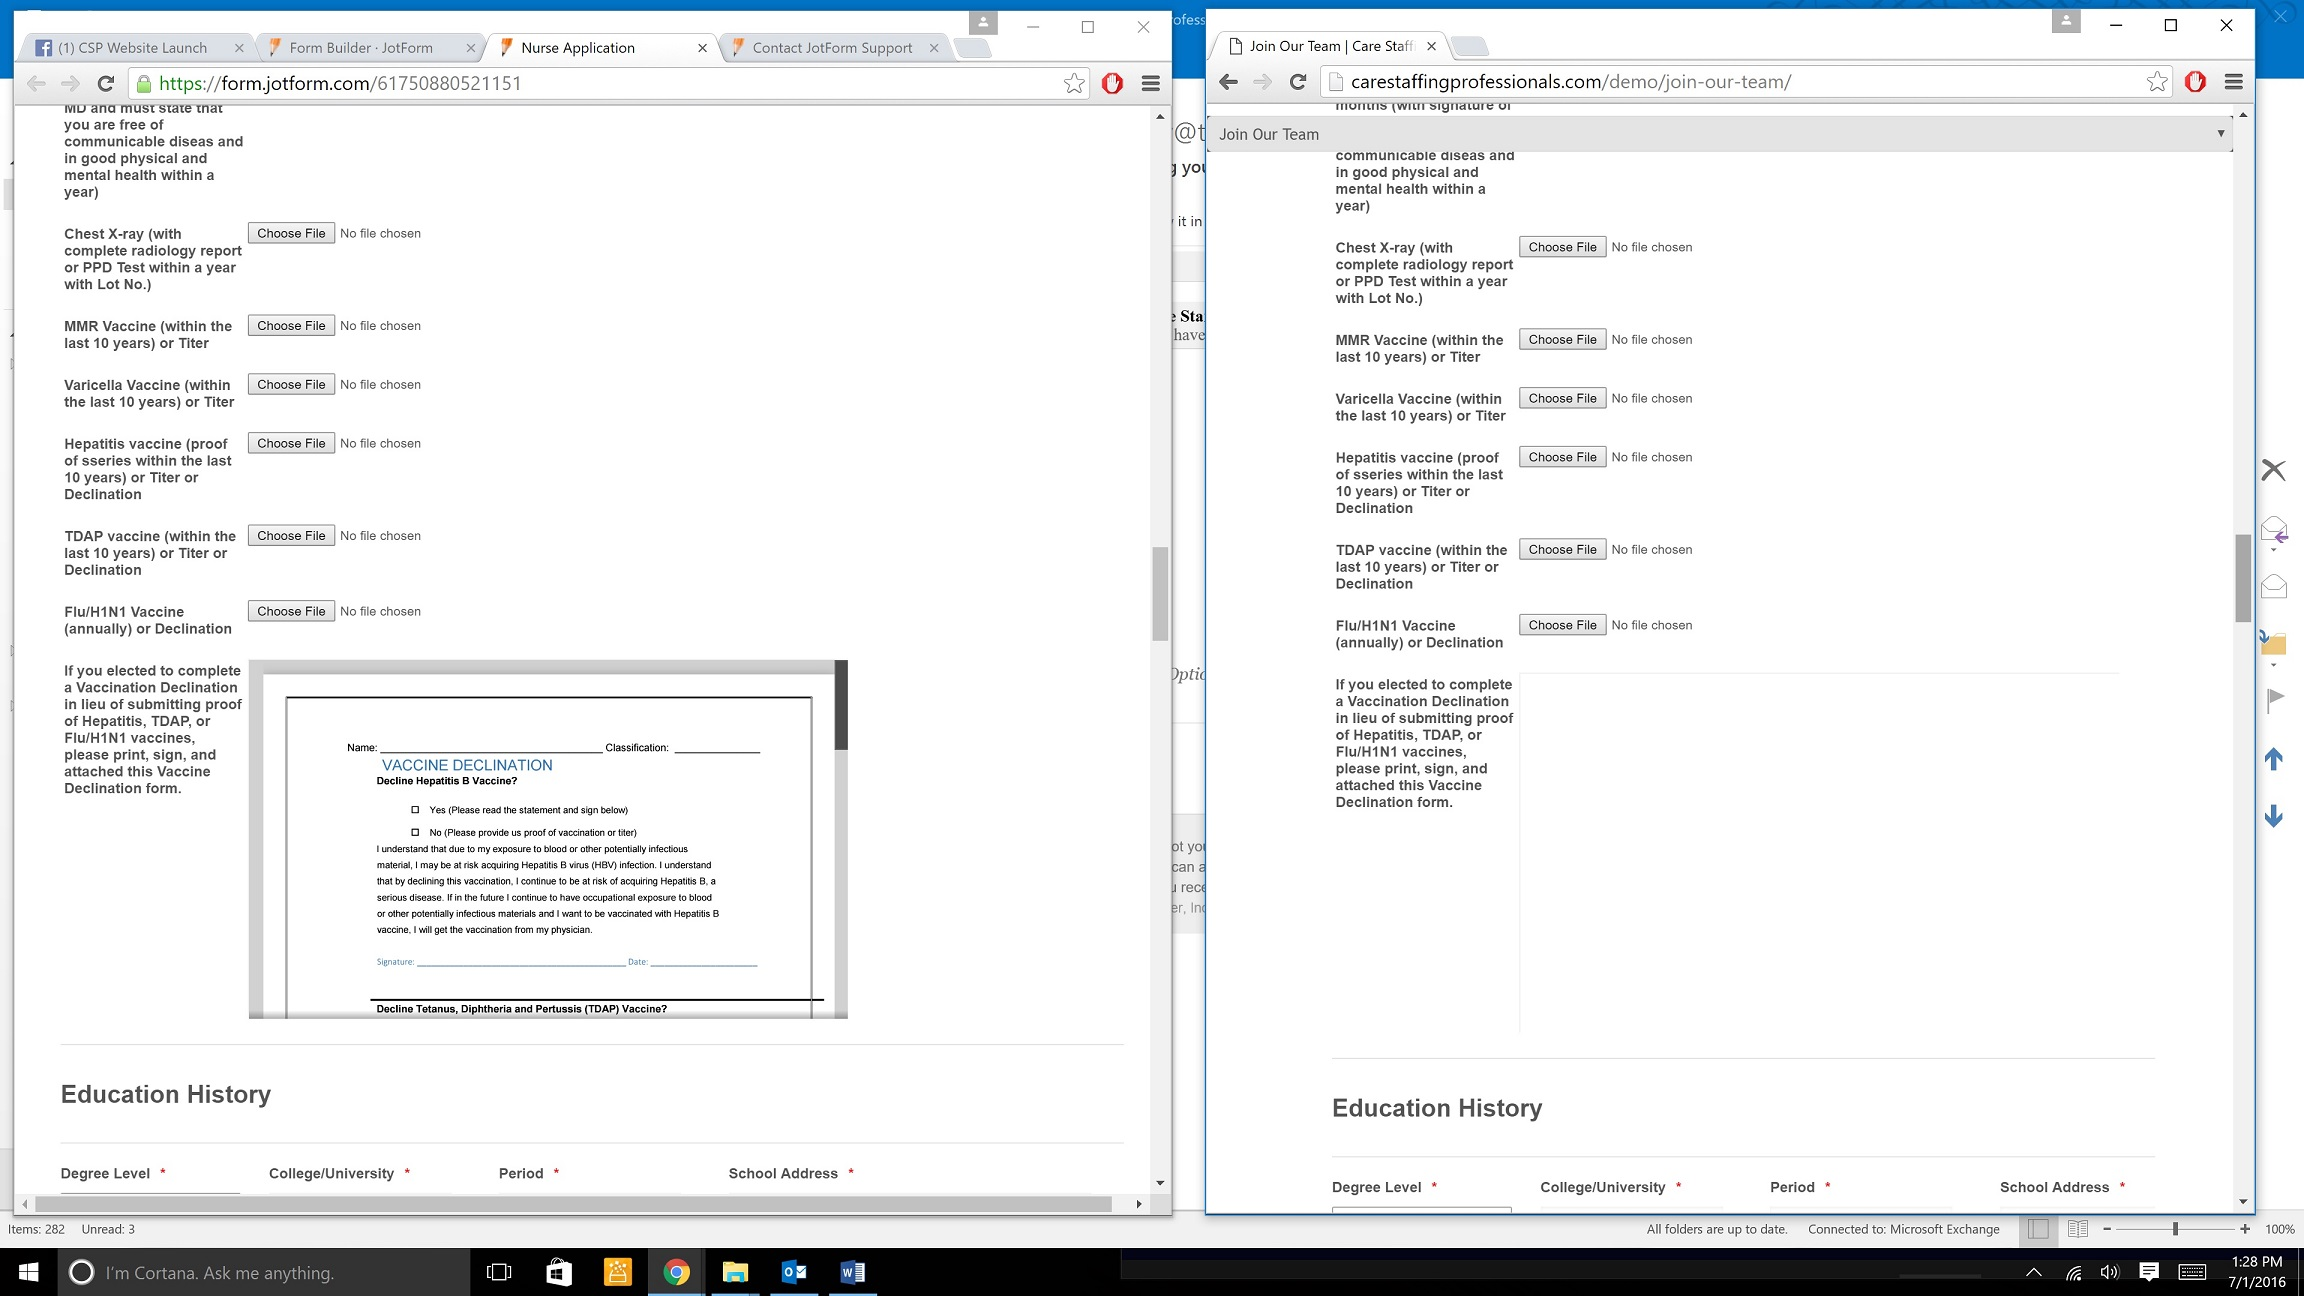 Unable to see pdf file on website jotform